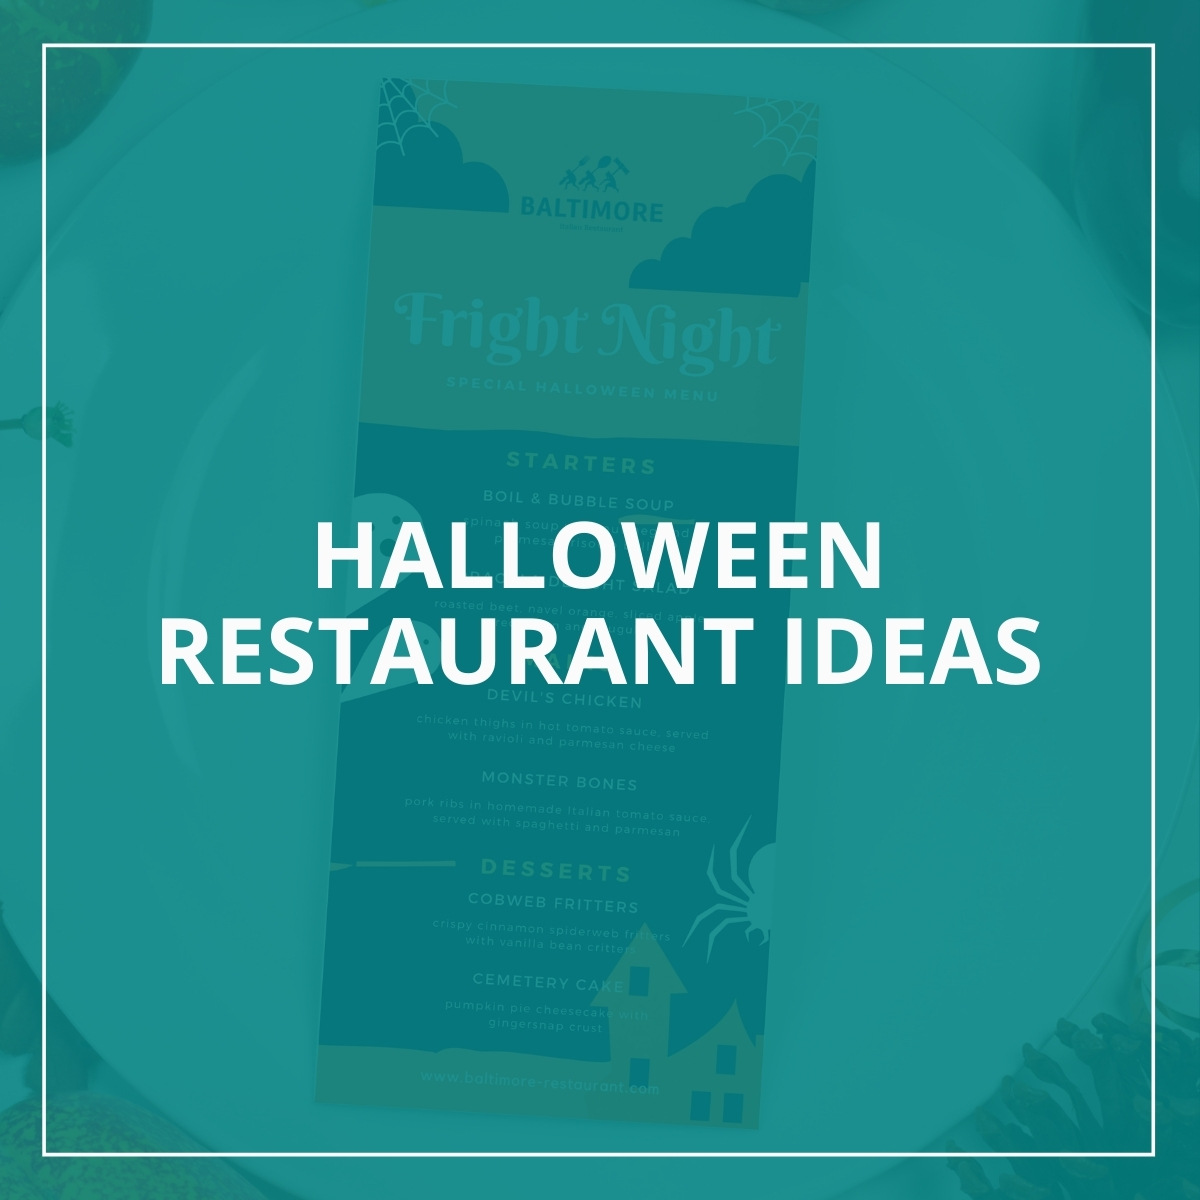 Halloween Restaurant Ideas